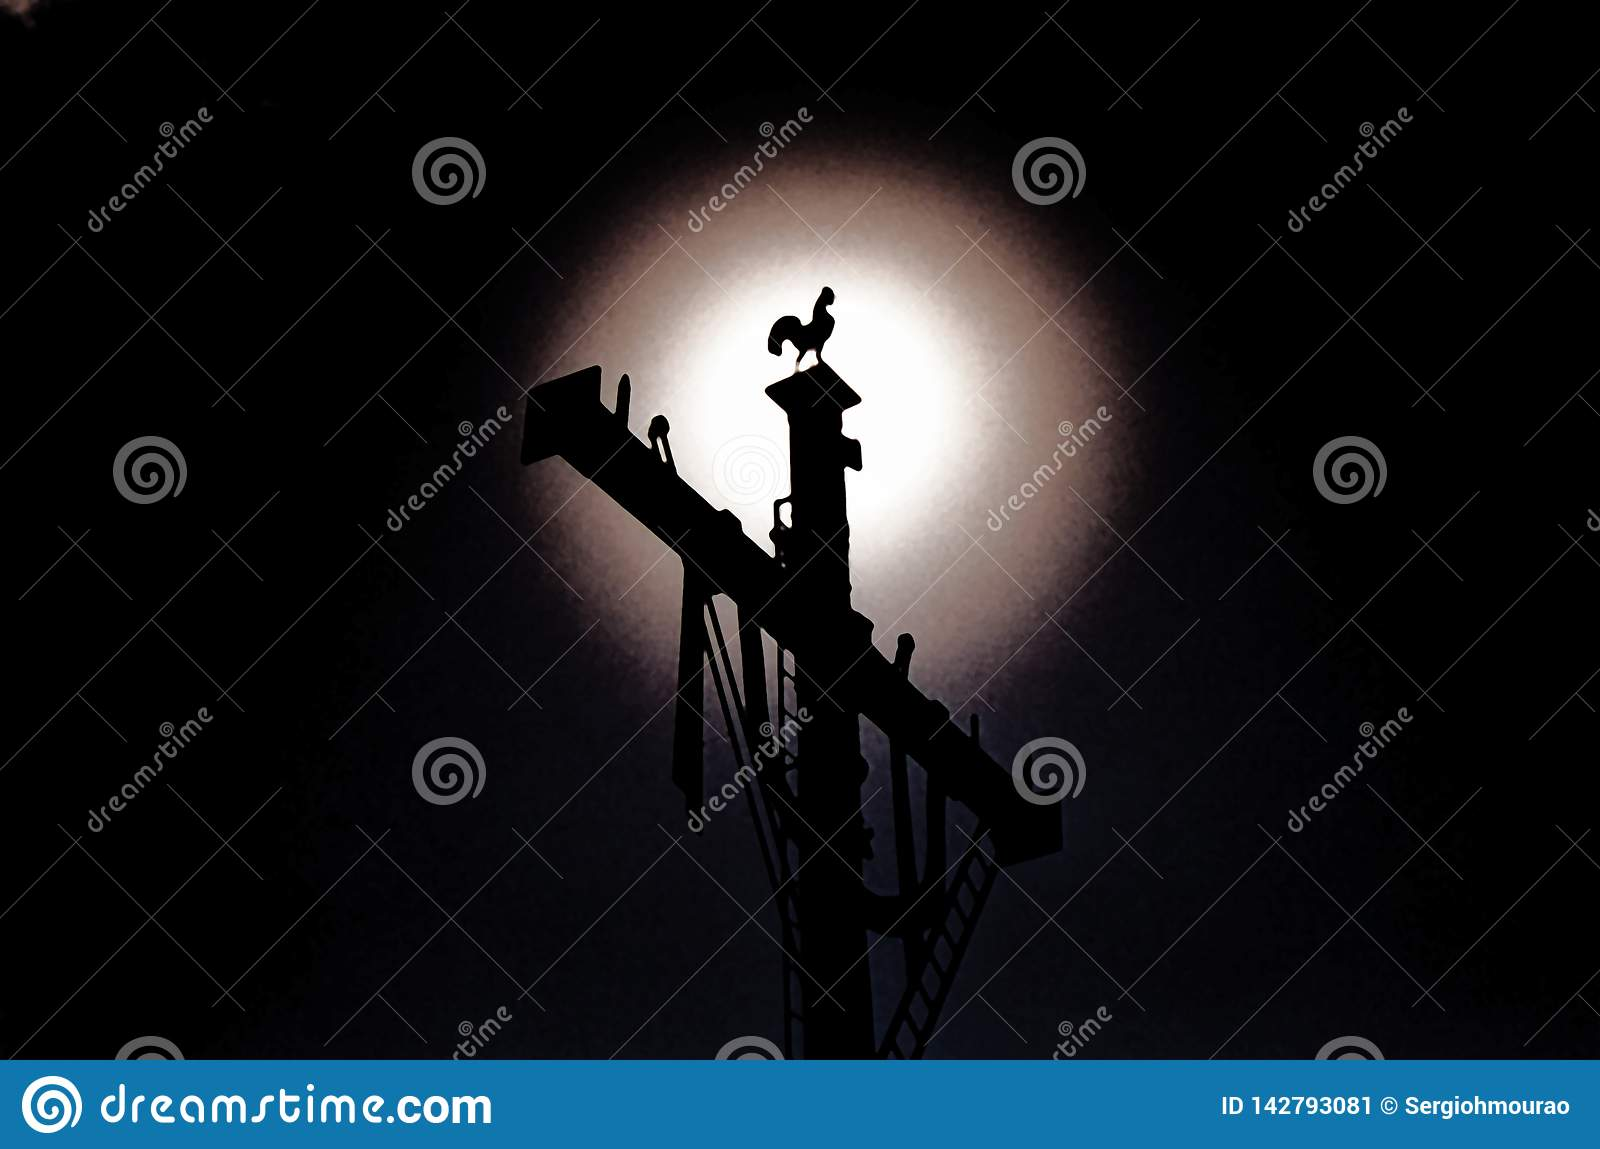 The moon shines in the tradition of the Cross of Jesus Christ